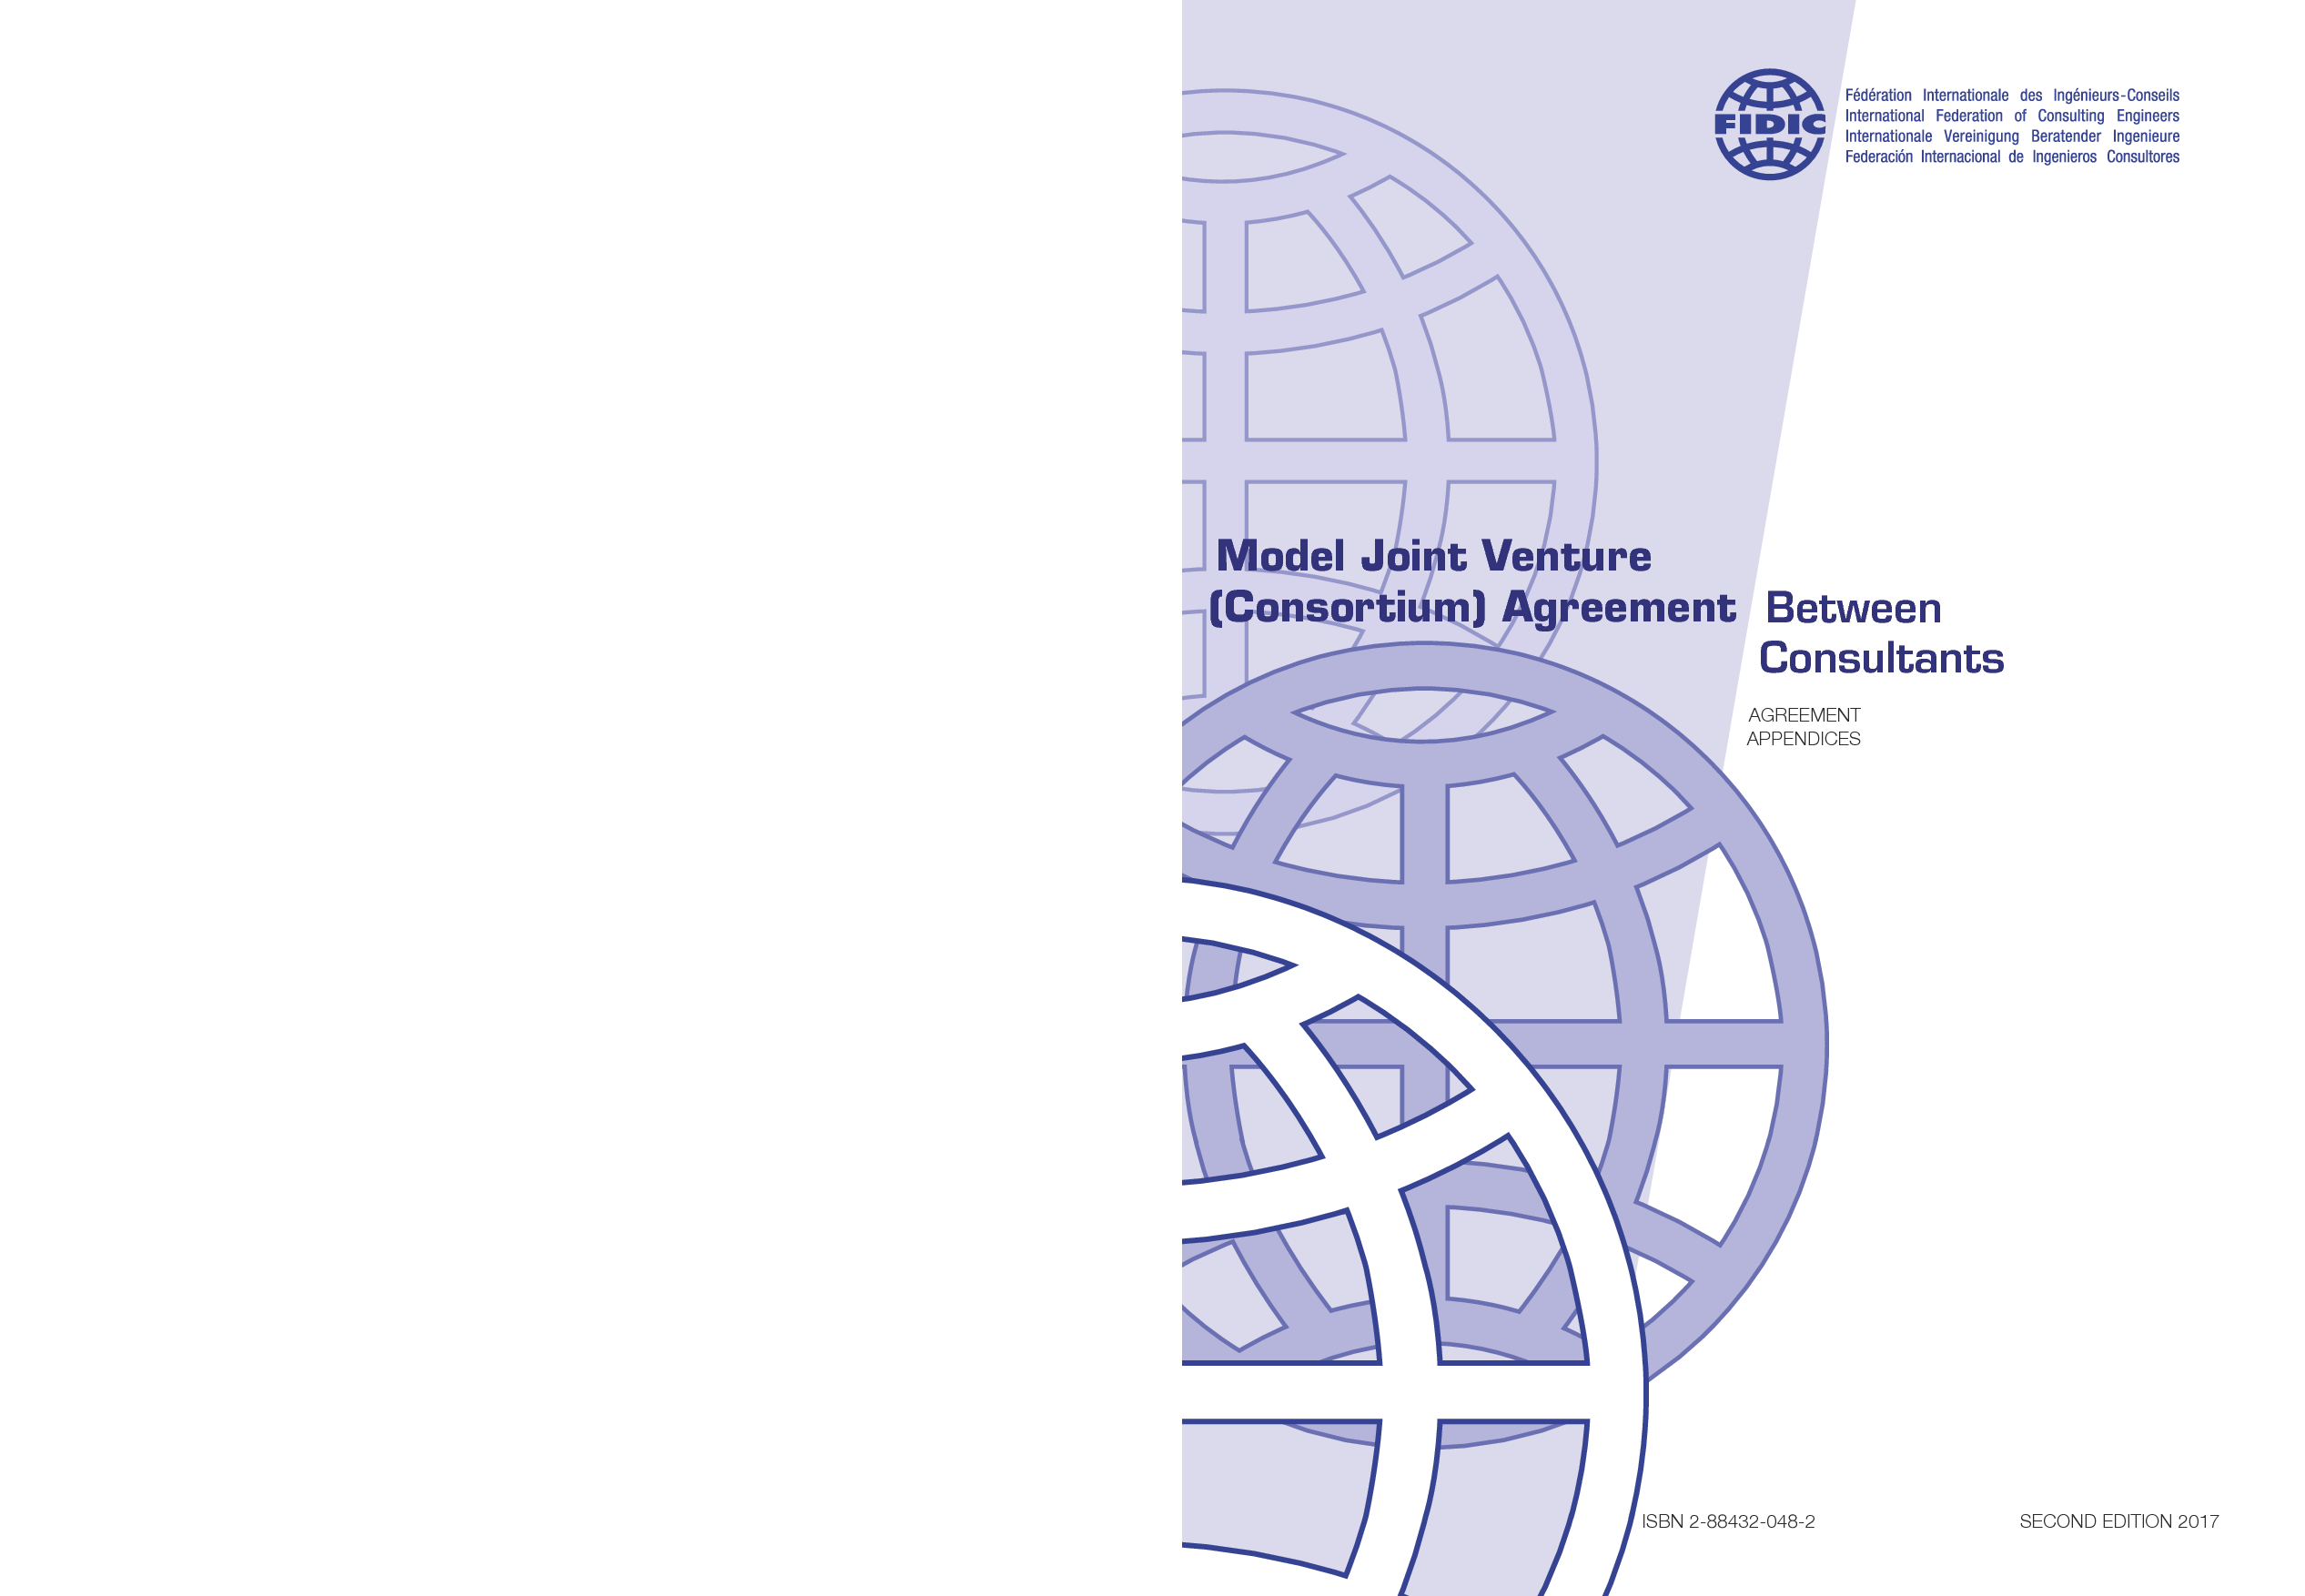 model joint venture consortium agreement 2nd edition